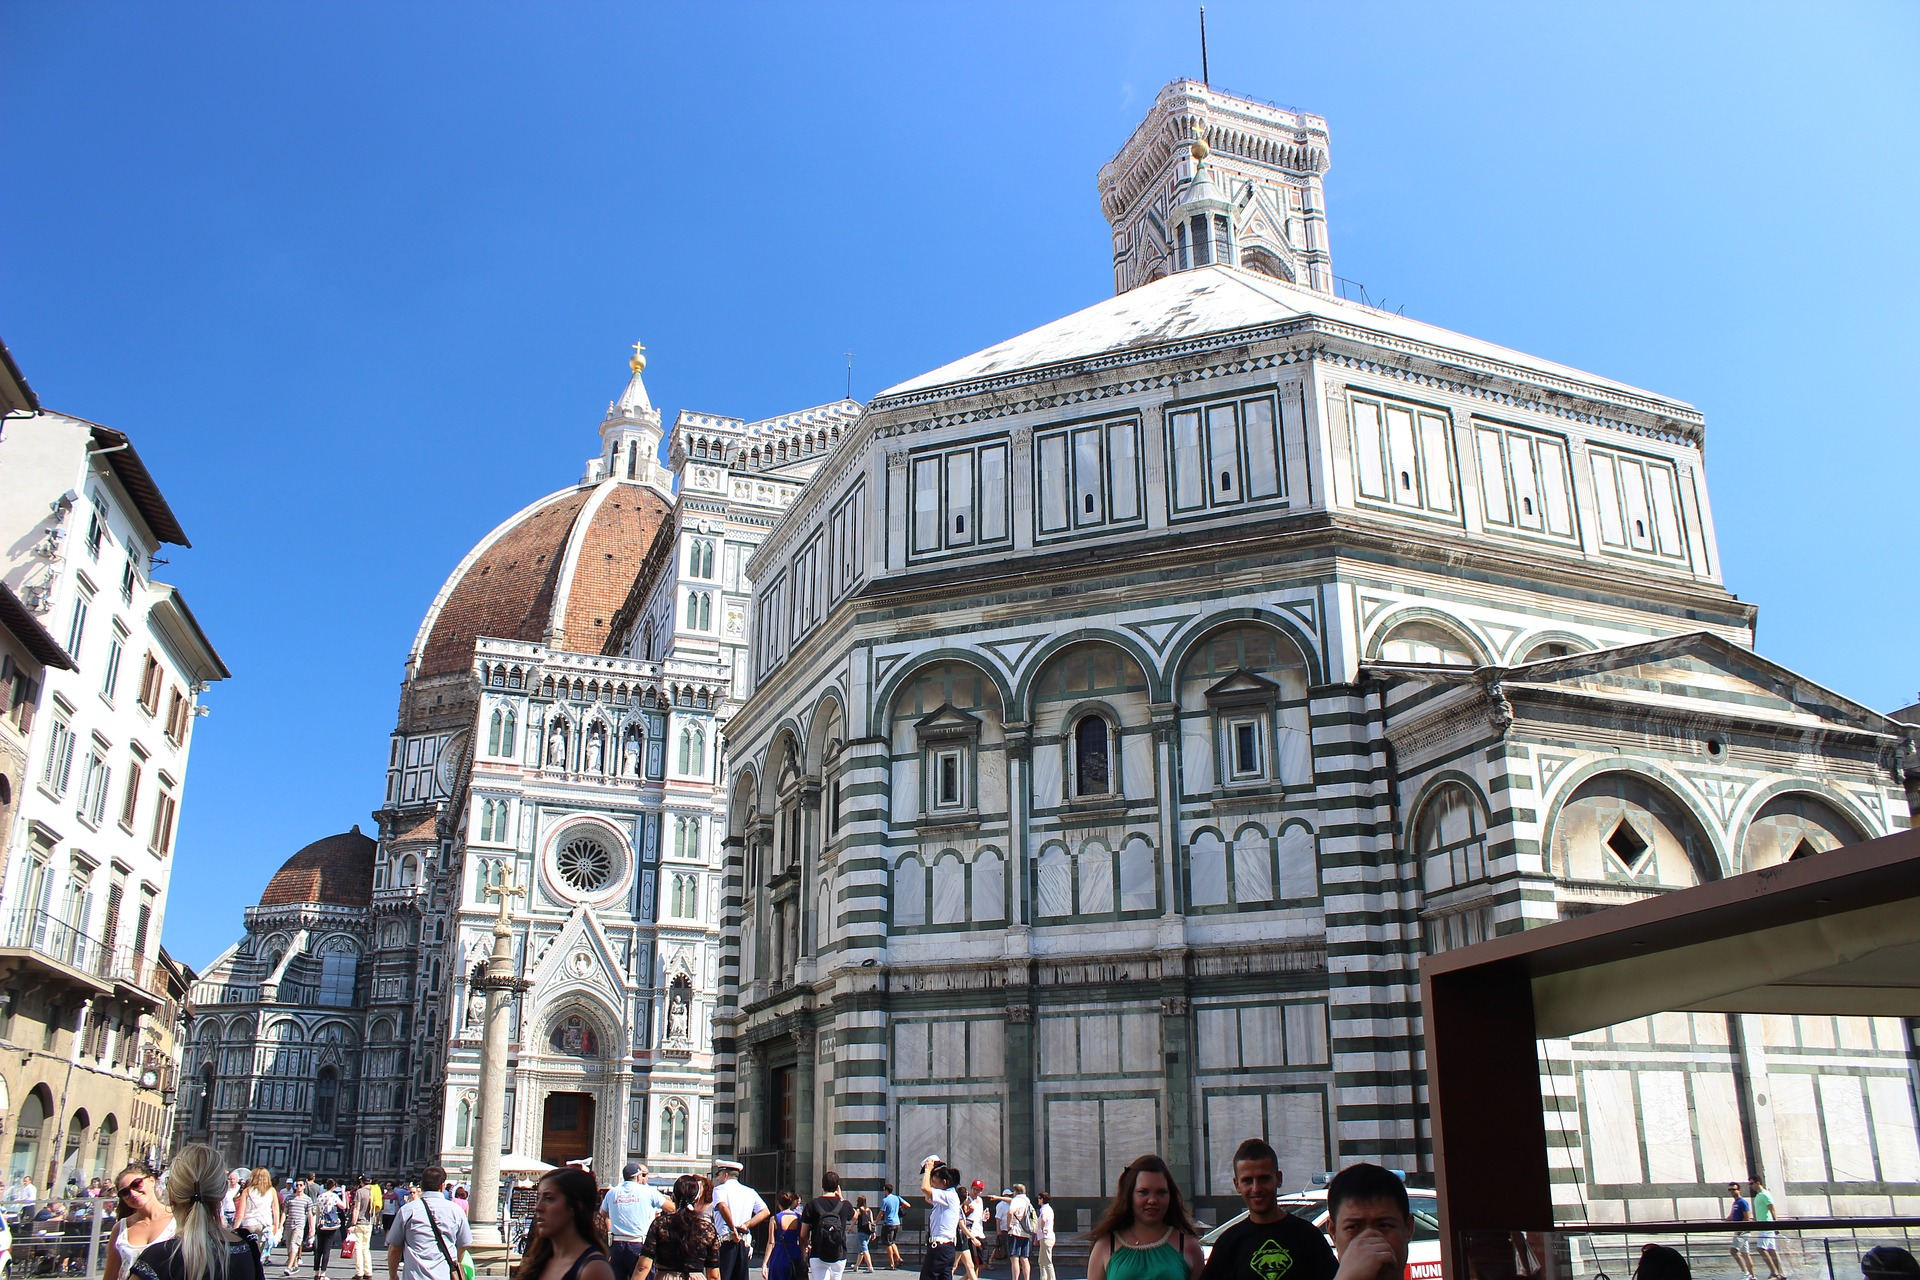 The Duomo in Florence, the Cathedral of Santa Maria del Fiore